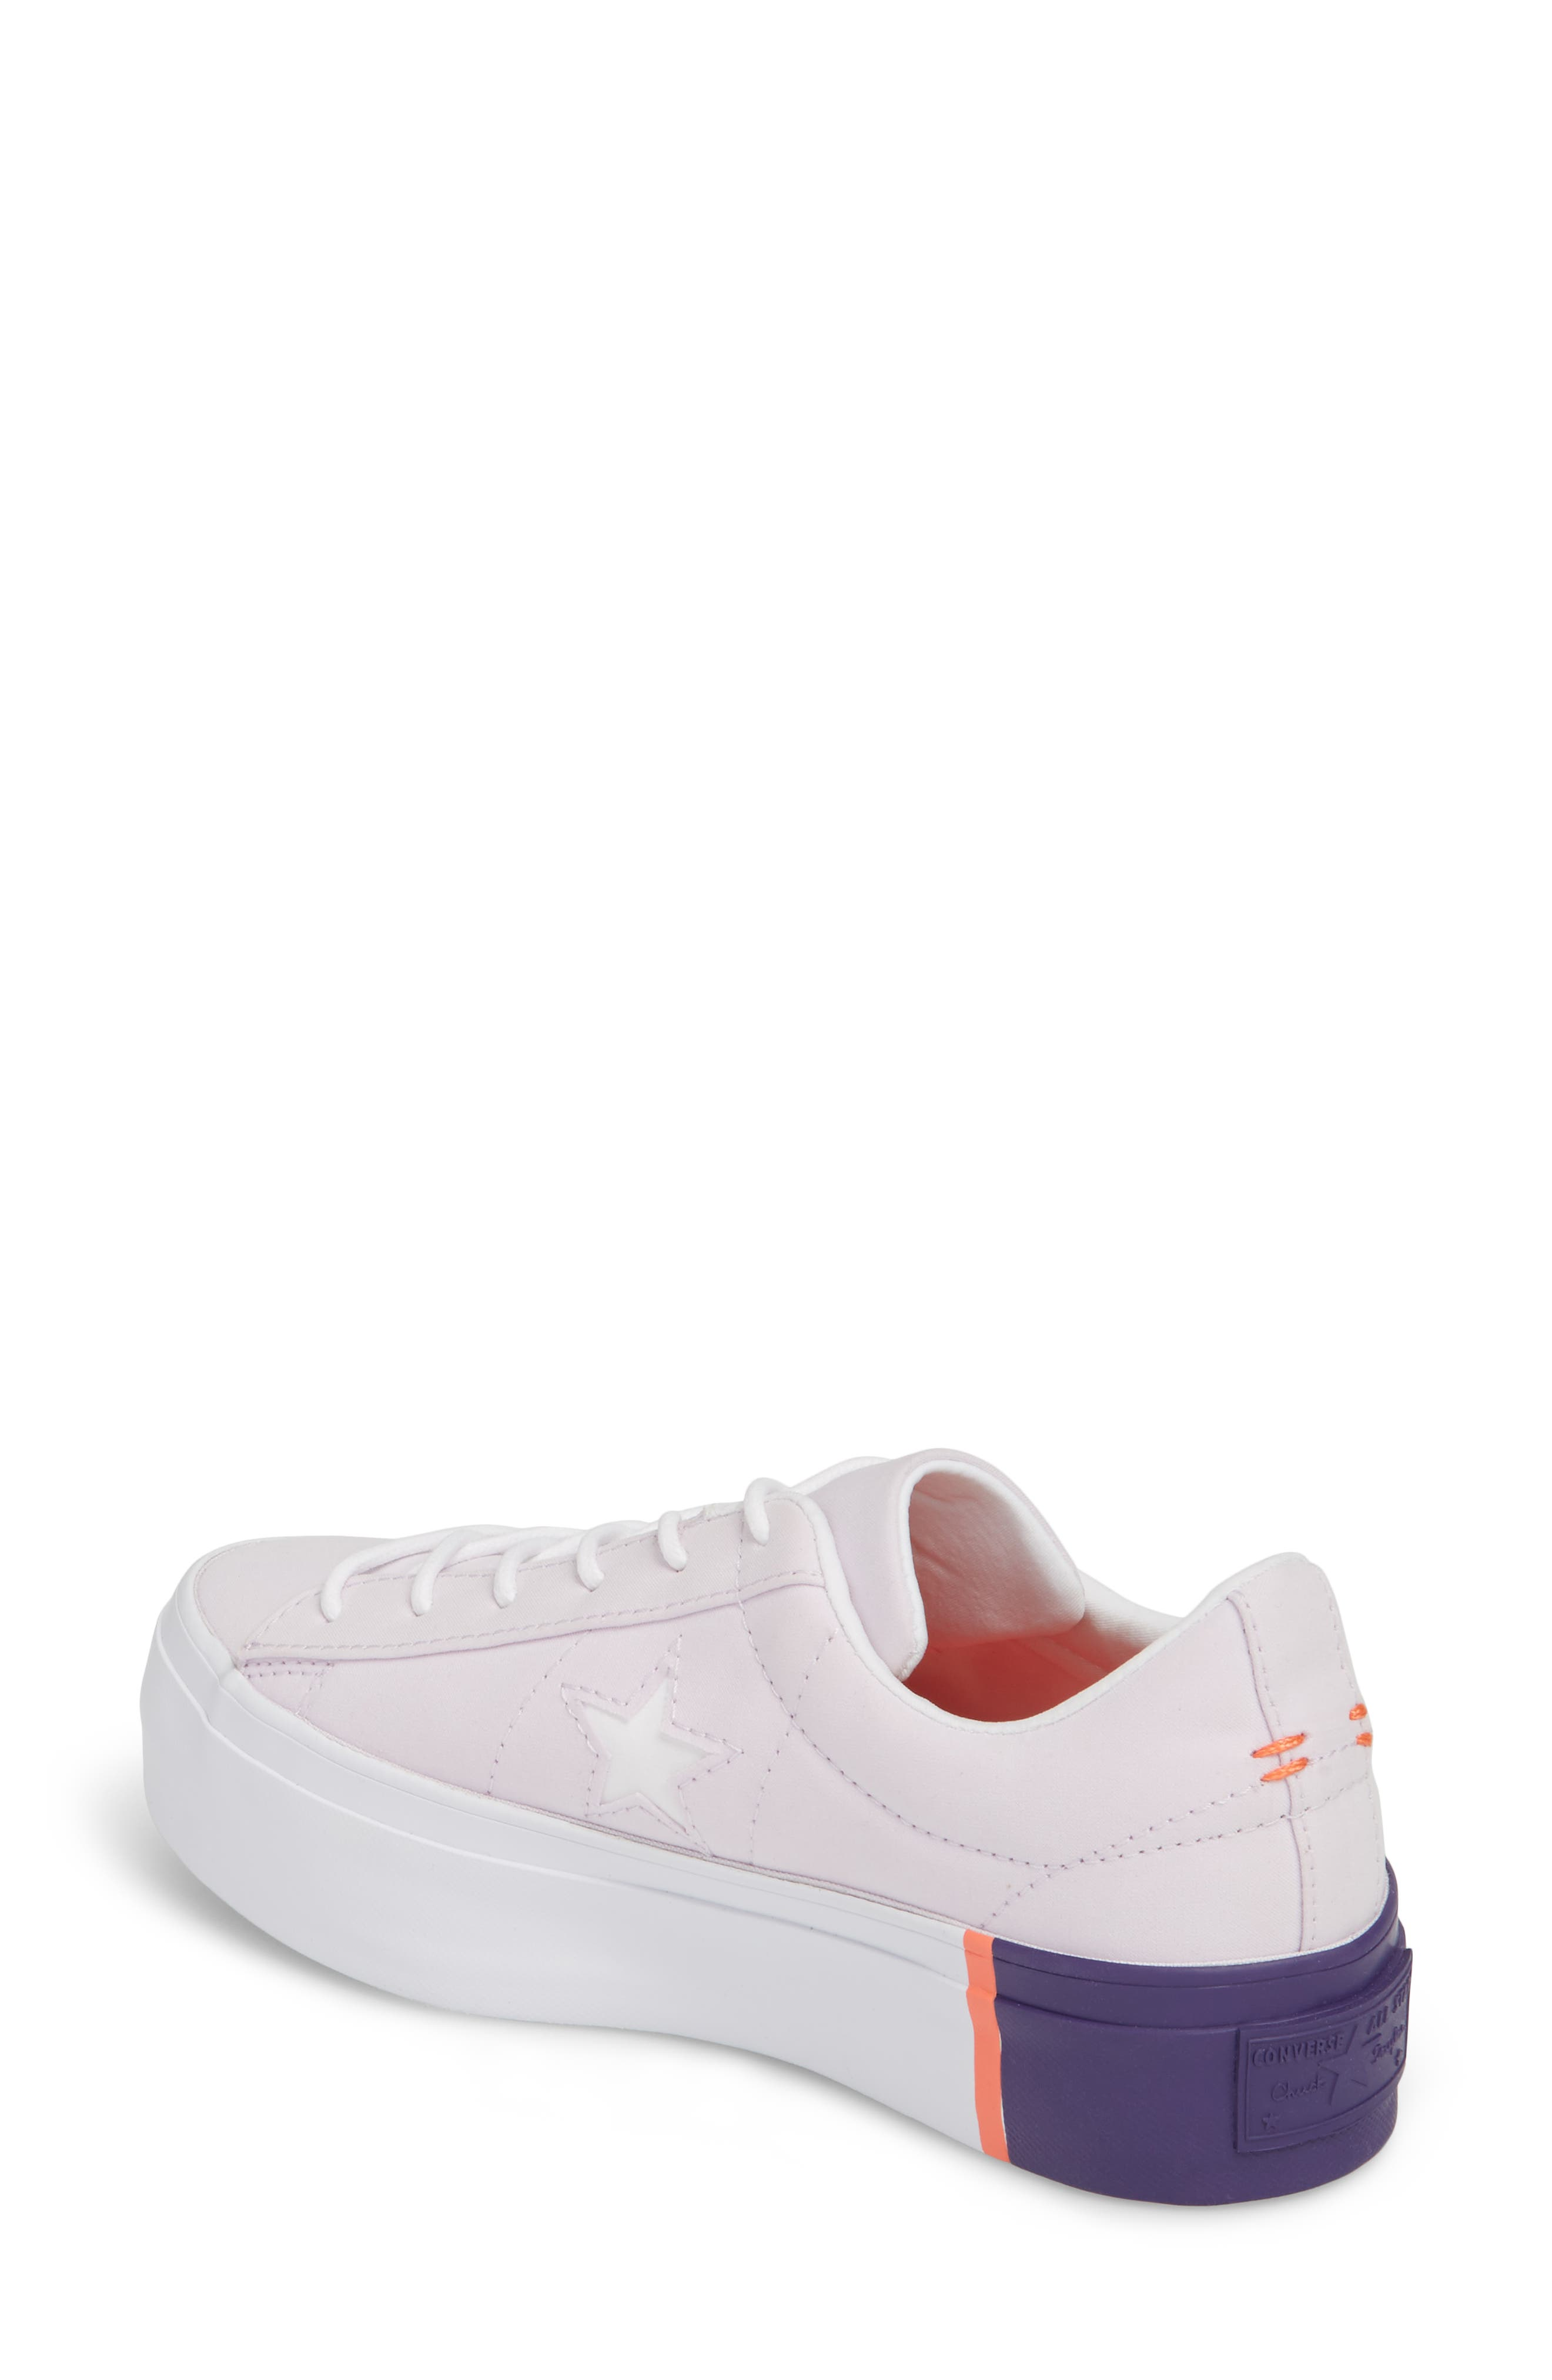 Chuck Taylor<sup>®</sup> All Star<sup>®</sup> One Star Platform Sneaker,                             Alternate thumbnail 2, color,                             Barely Grape